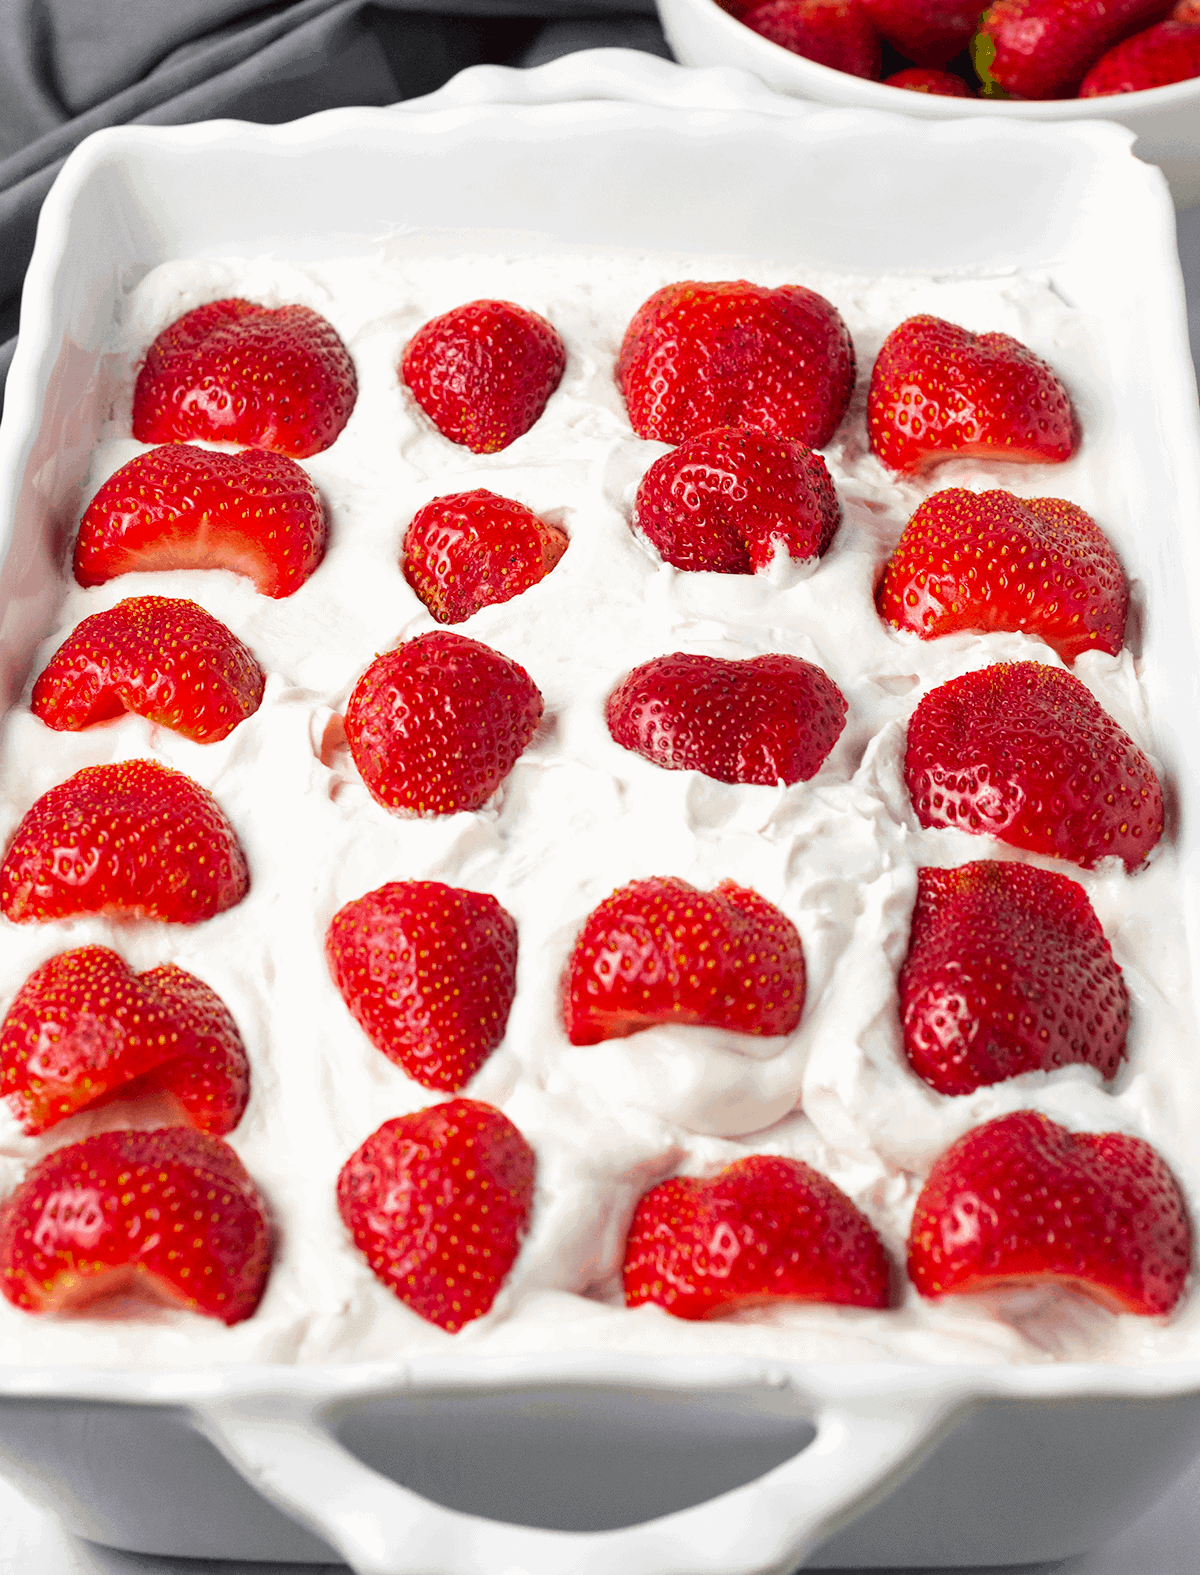 Gluten-Free Vegan strawberry ice-box cake overlay topped with strawberries in a white casserole dish